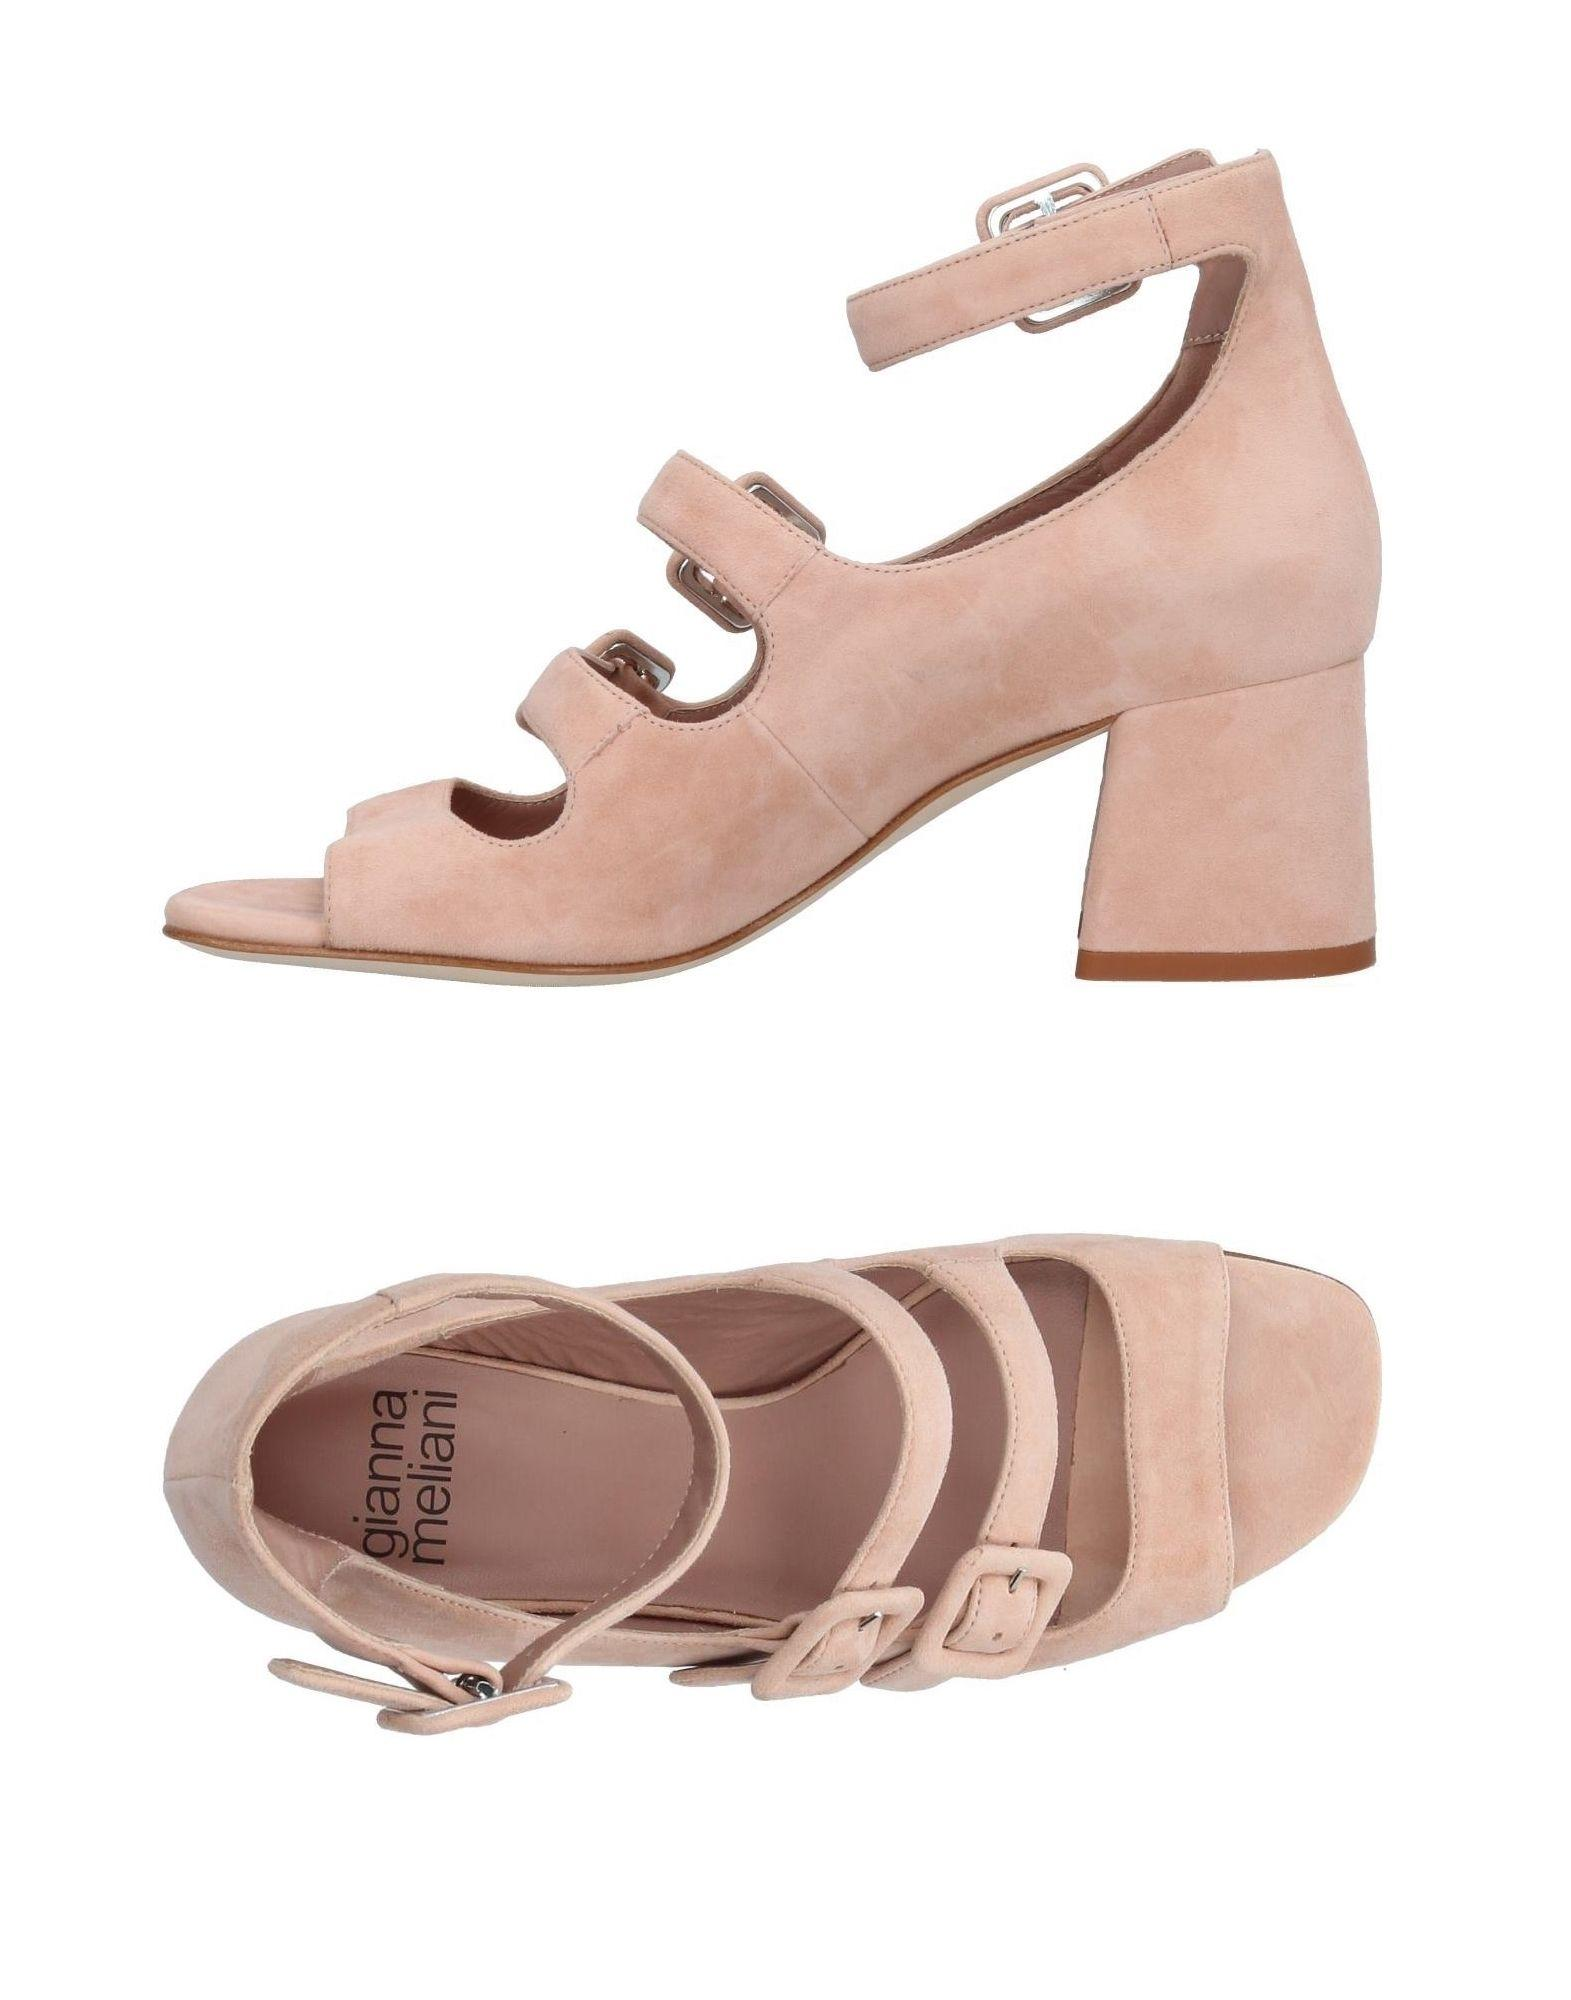 Gianna Meliani Sandals In Pale Pink